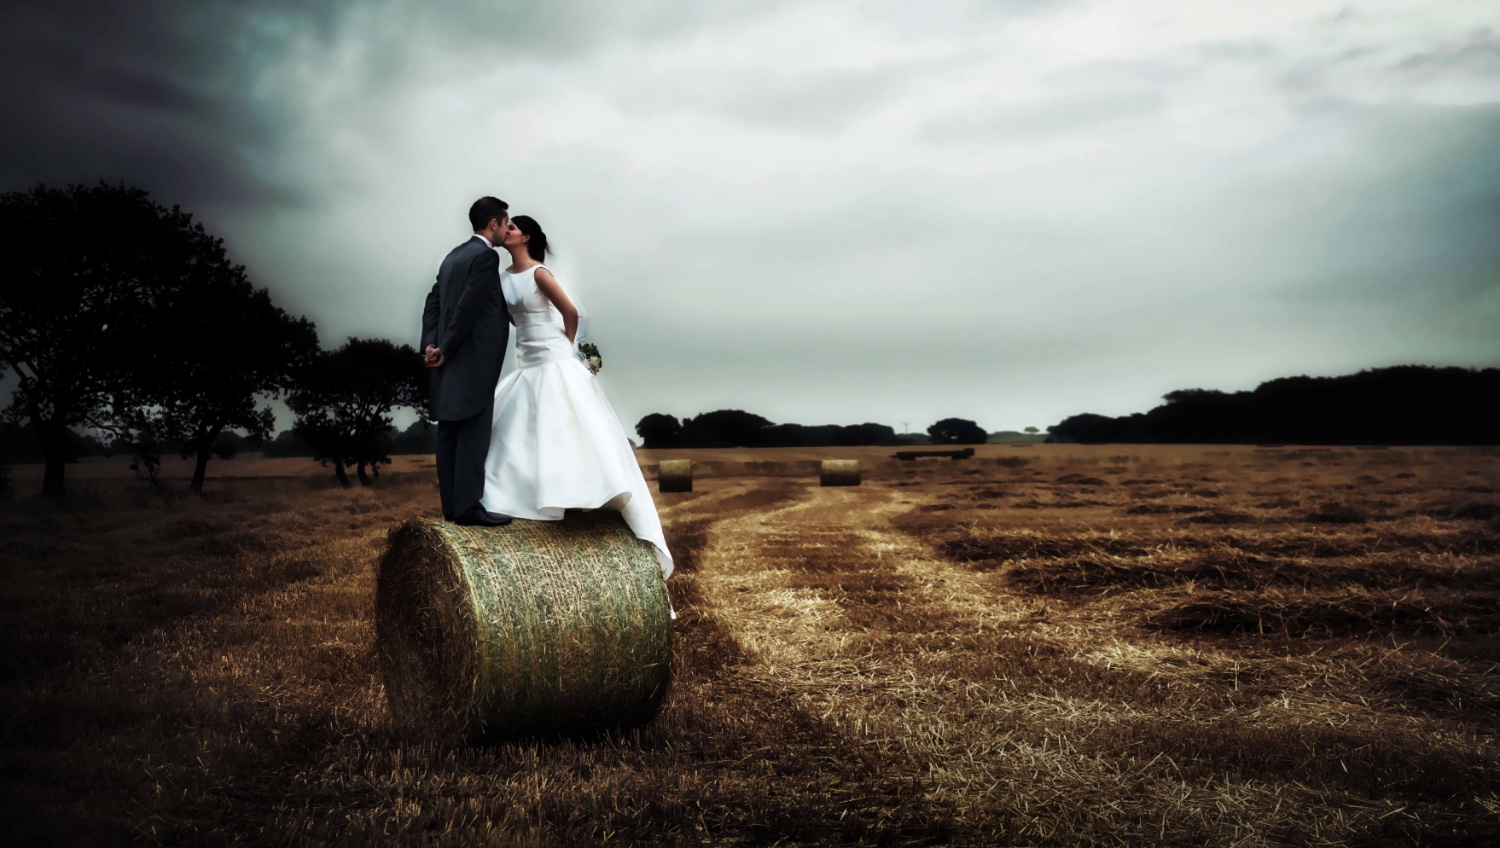 Bride and Groom on haystack, unusual wedding photography